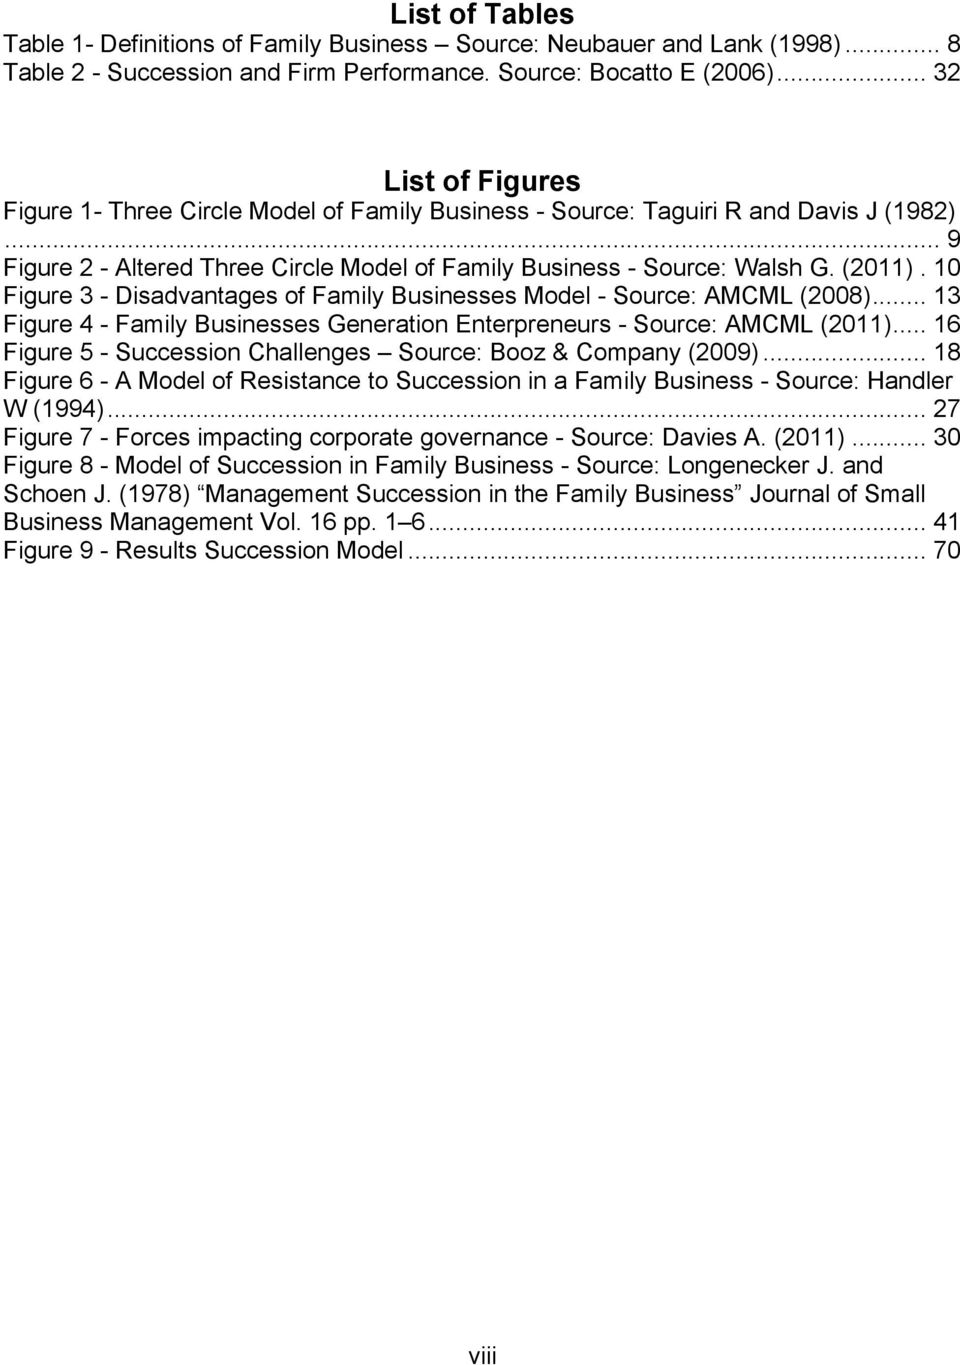 10 Figure 3 - Disadvantages of Family Businesses Model - Source: AMCML (2008)... 13 Figure 4 - Family Businesses Generation Enterpreneurs - Source: AMCML (2011).